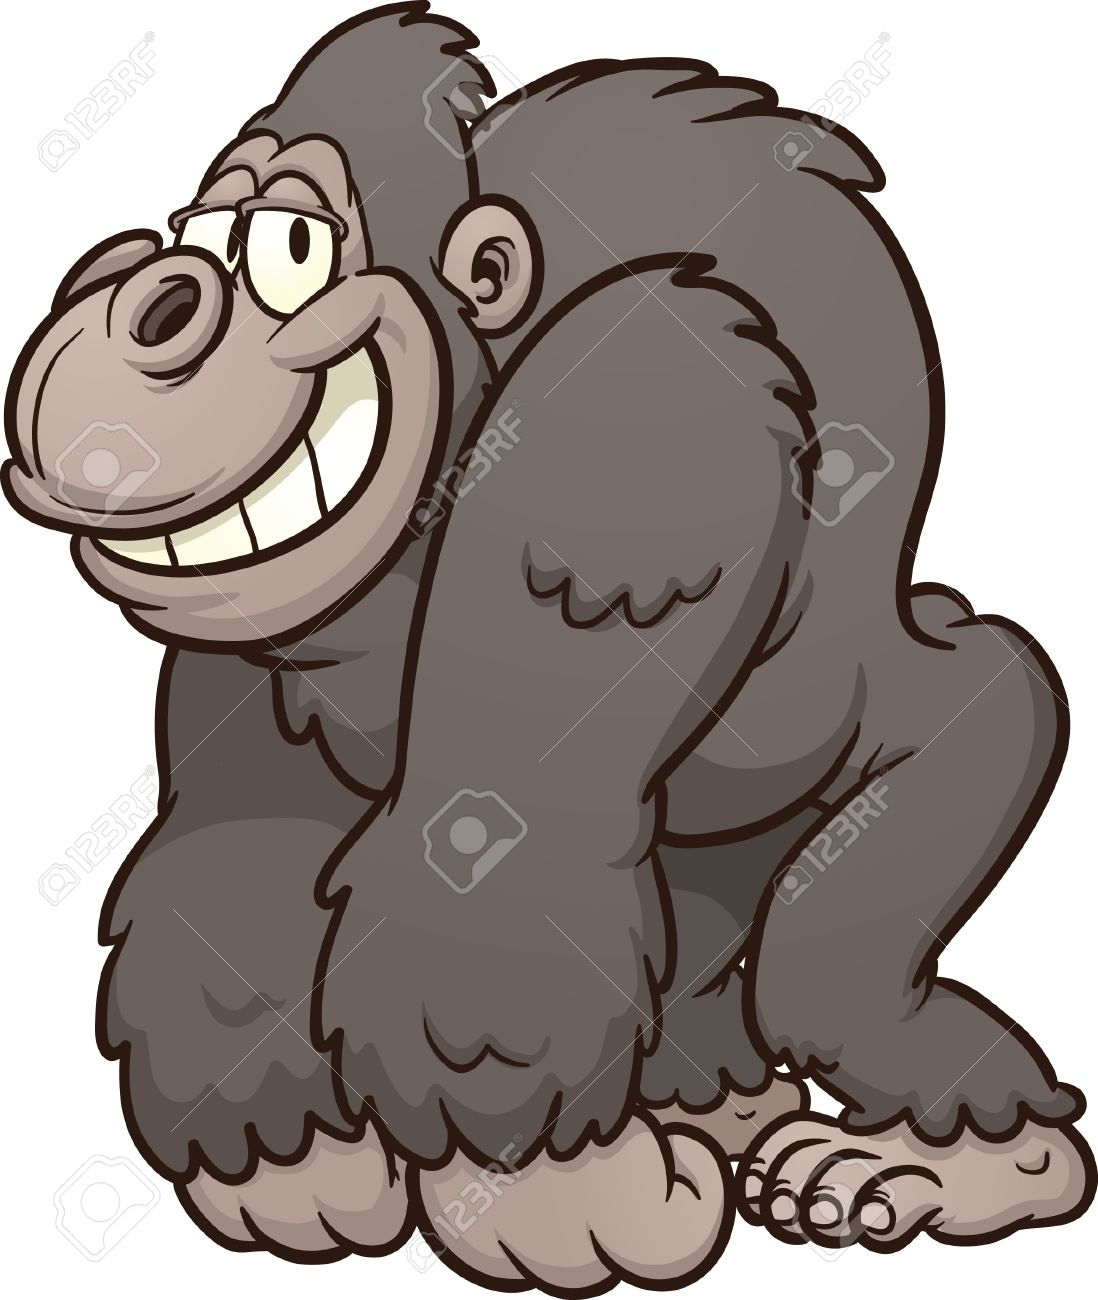 Strong Cartoon Gorilla Vector Clip Art I-Strong cartoon gorilla Vector clip art illustration with simple gradients  All in a single layer Stock-19